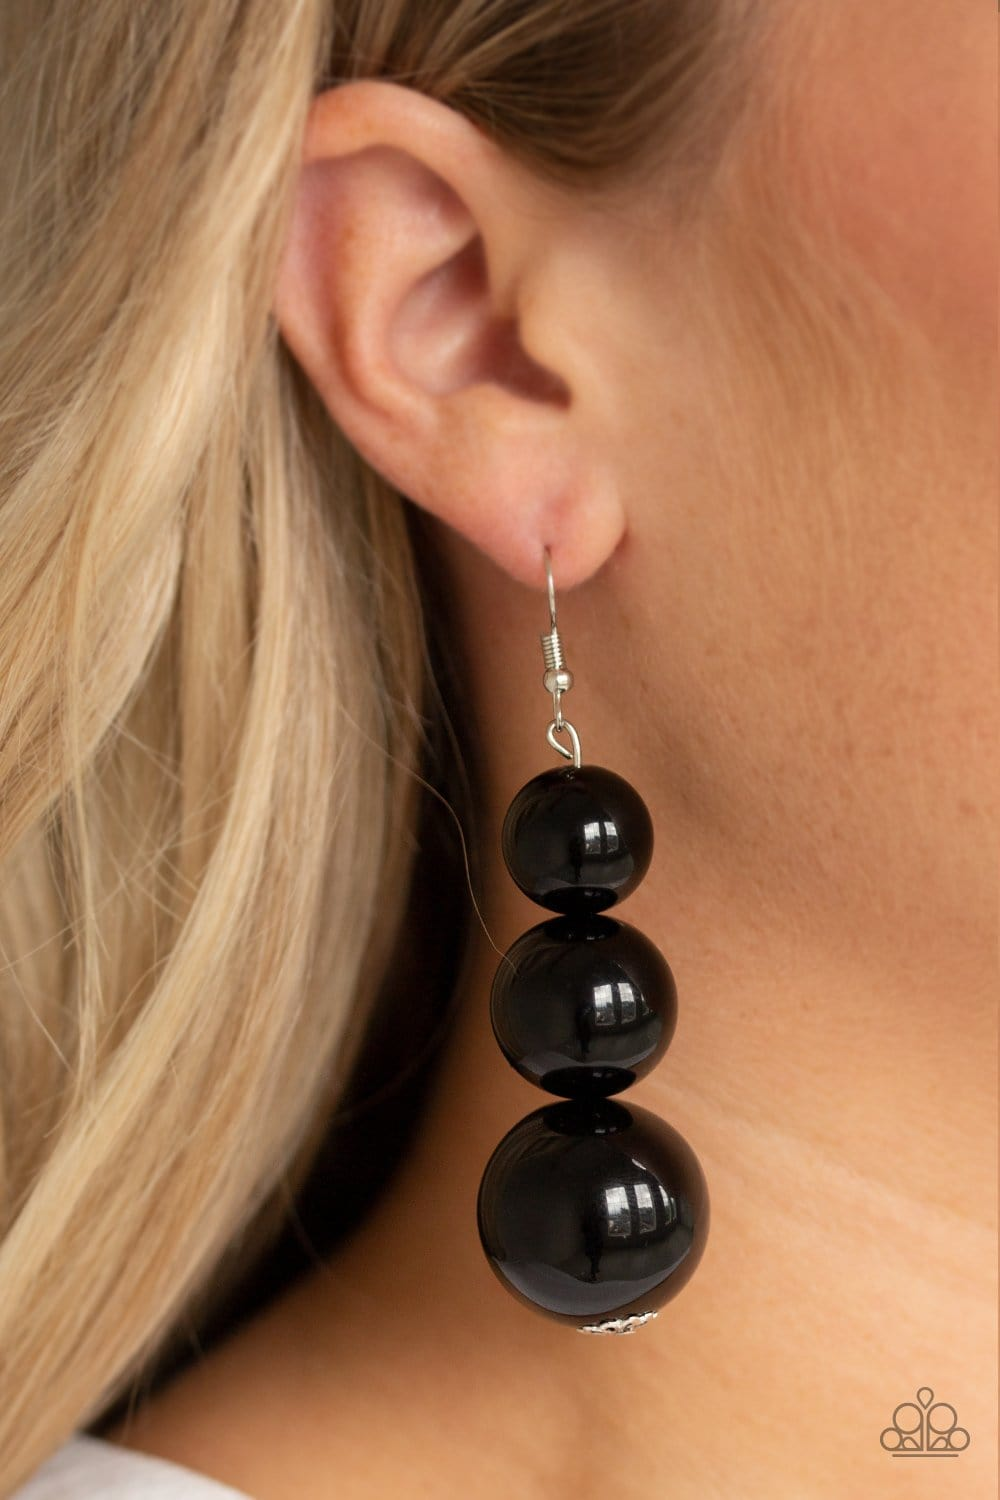 Material World - Black: Paparazzi Accessories - Jewels N' Thingz Boutique